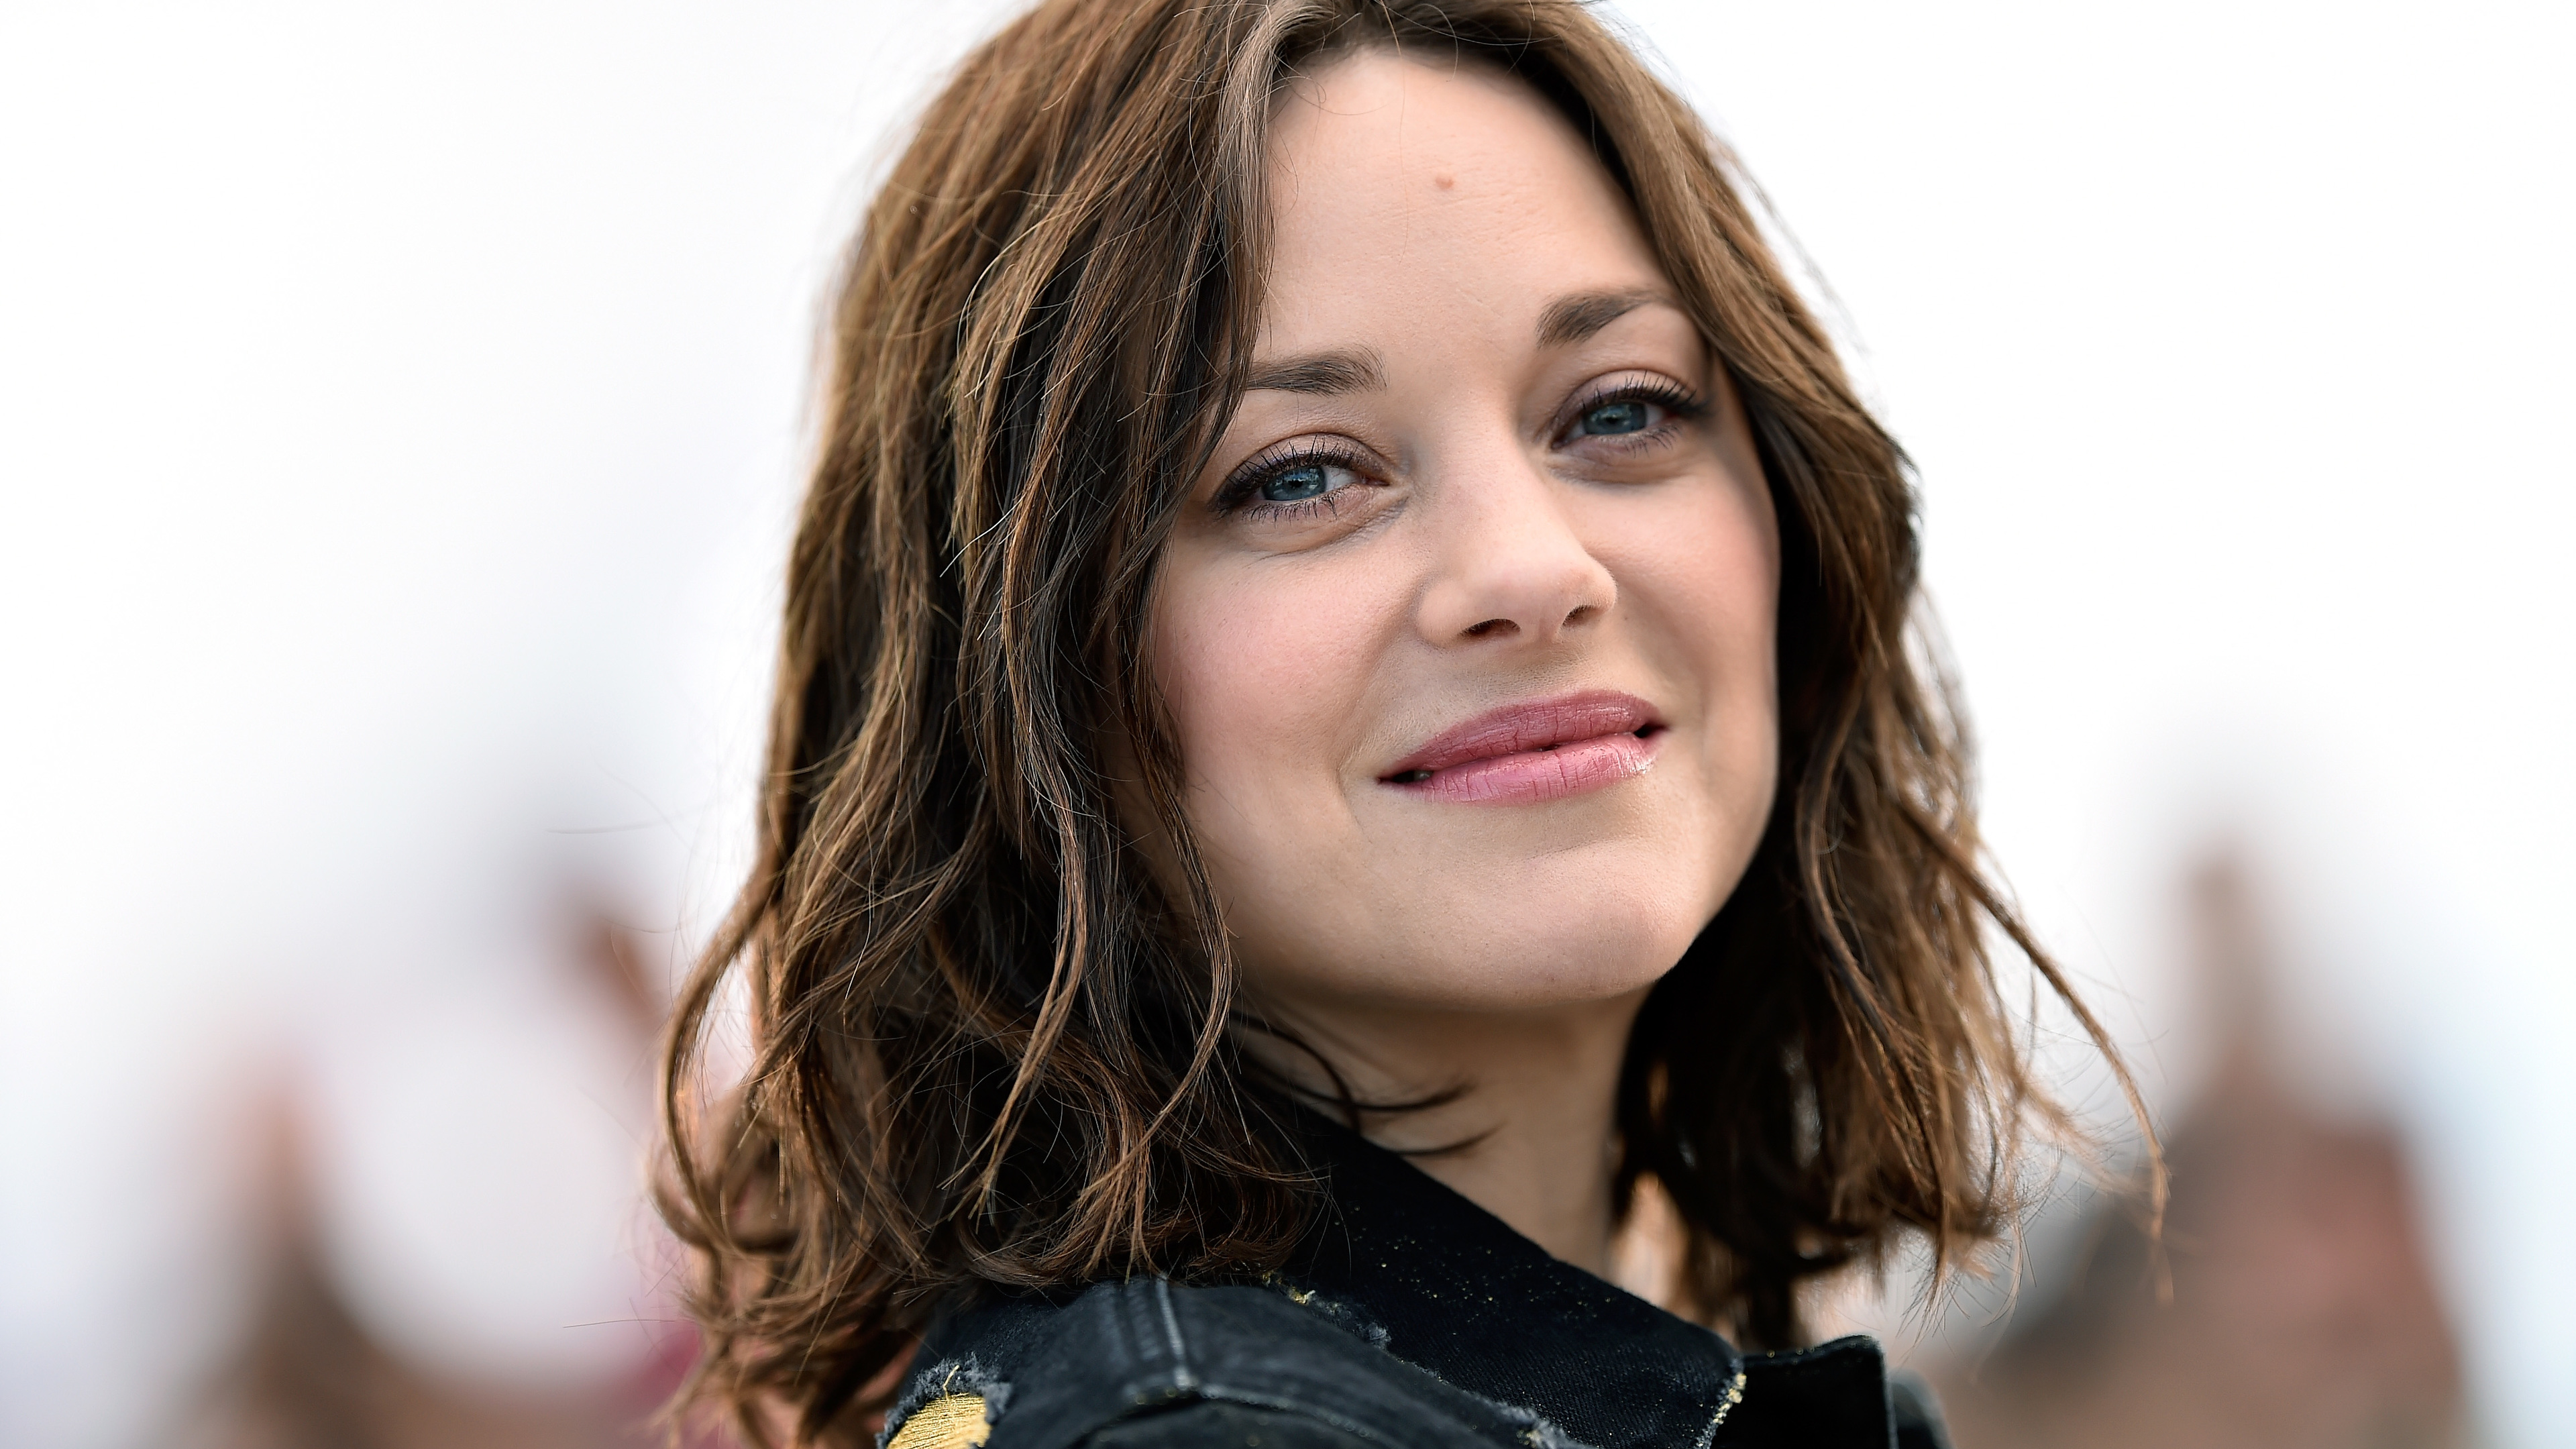 marion cotillard smiling 1536950626 - Marion Cotillard Smiling - smile wallpapers, marion cotillard wallpapers, hd-wallpapers, girls wallpapers, celebrities wallpapers, 5k wallpapers, 4k-wallpapers